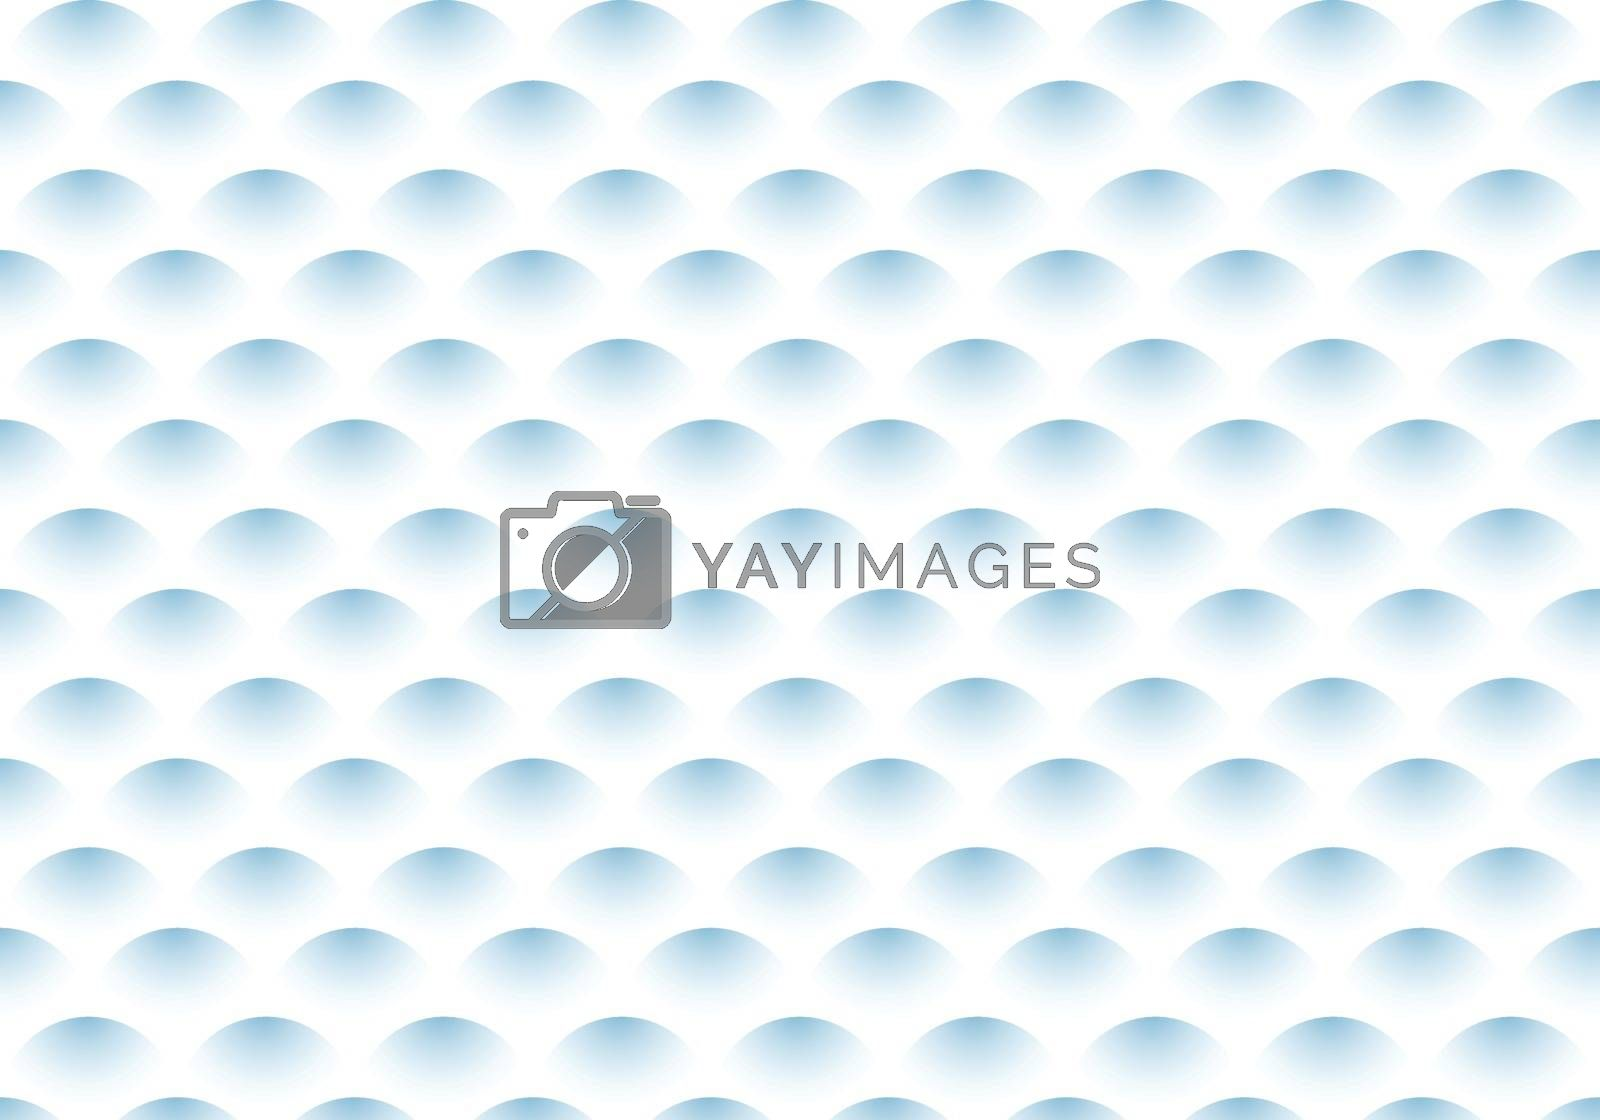 Abstract semicircle blue gradient wave pattern on white background. Vector illustration